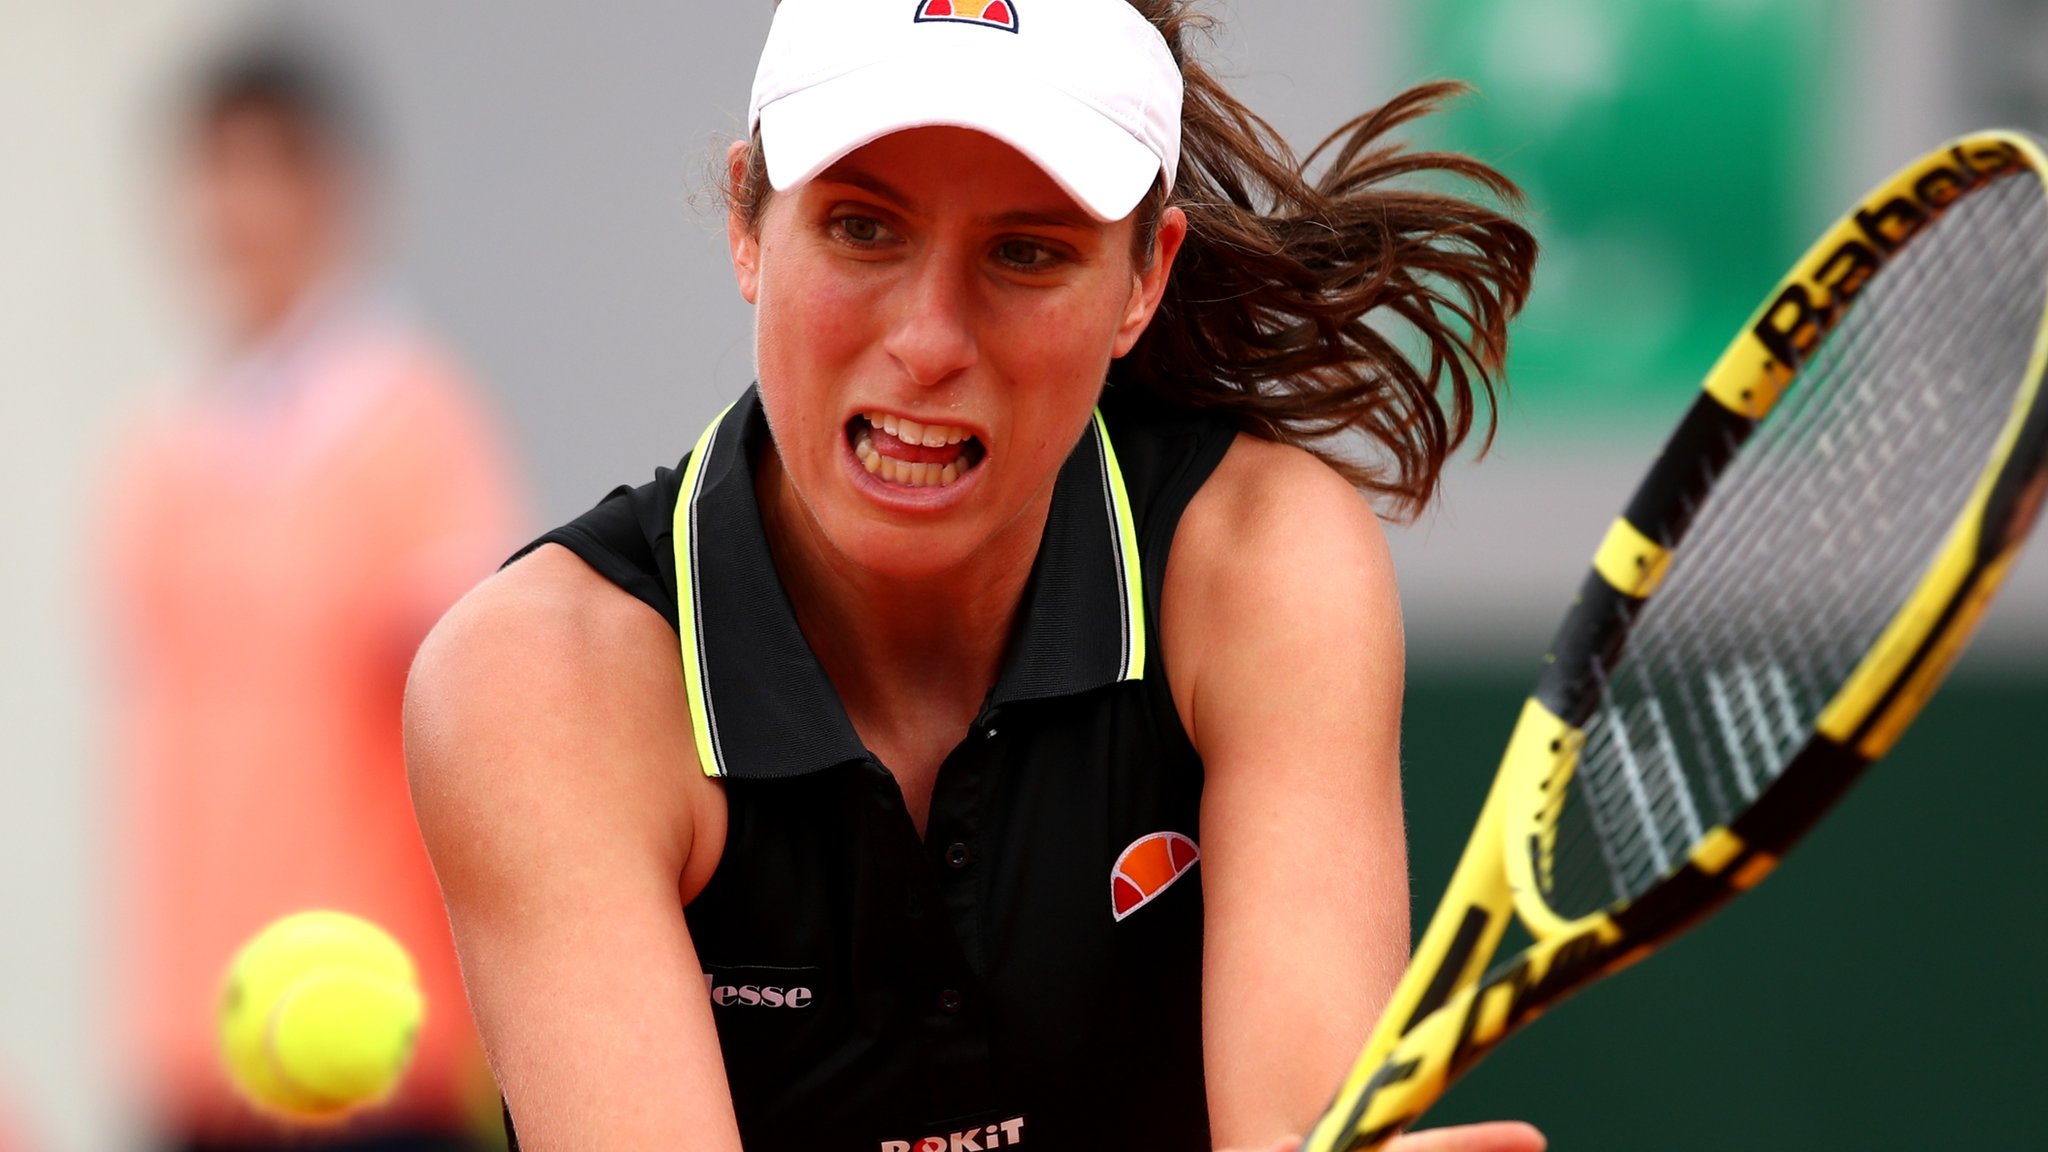 French Open 2019: Johanna Konta advances to second round for first time